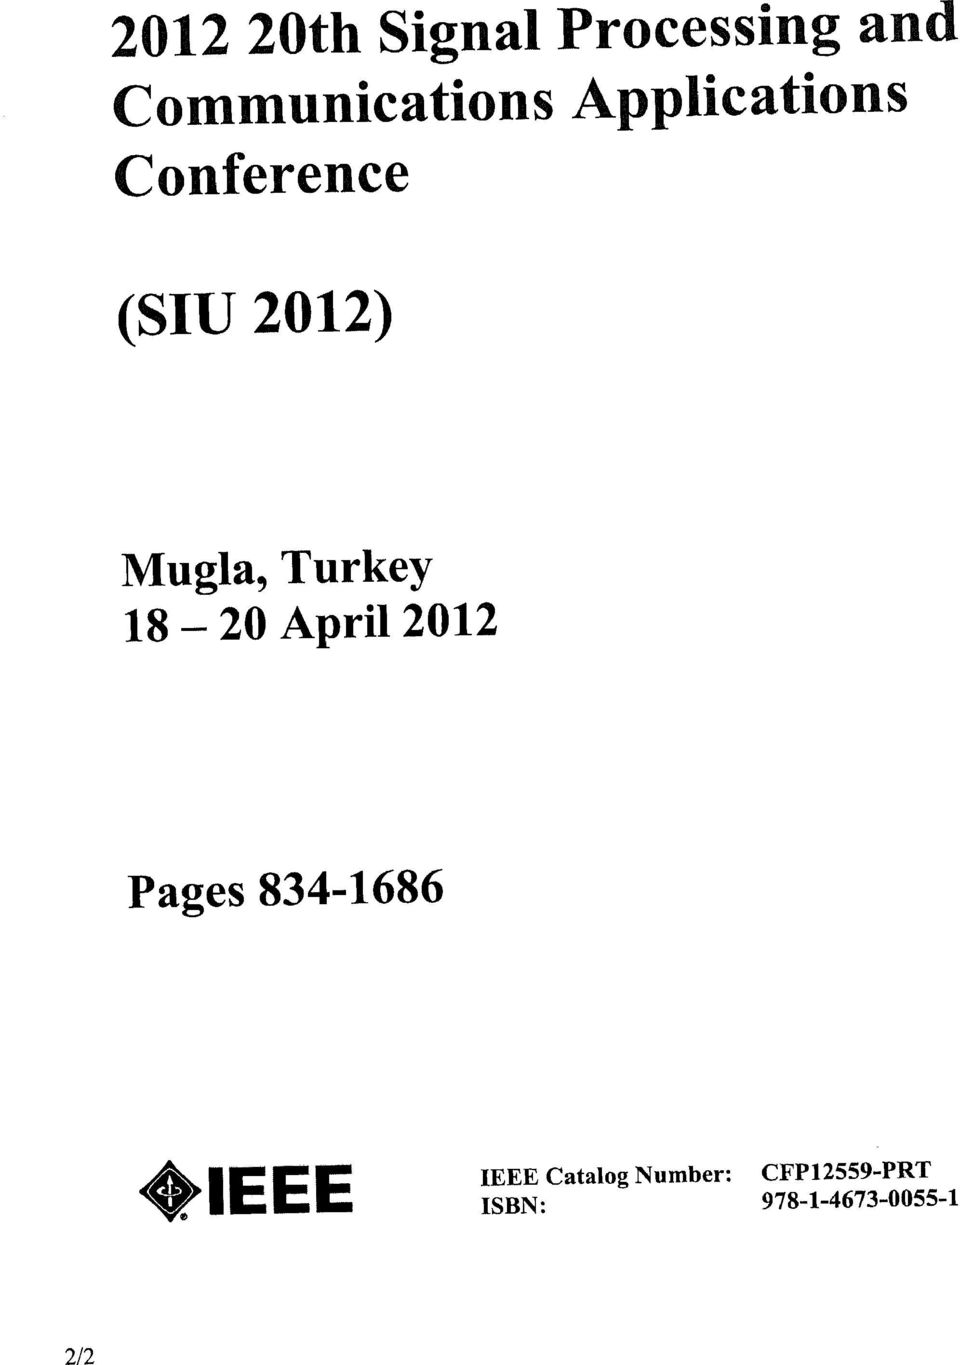 Turkey 20 April 2012 18 - Pages 834-1686 IEEE